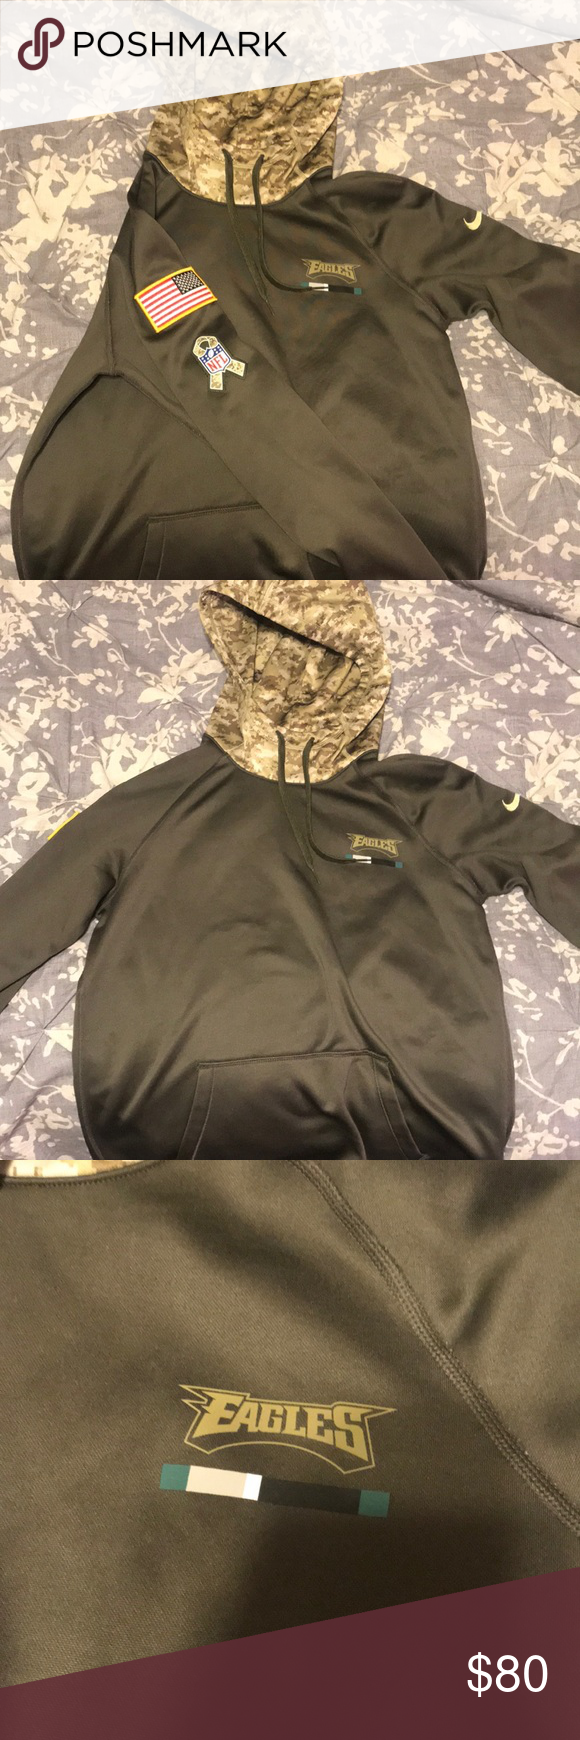 8137fb5bc 2017 Nike NFL Military Appreciation Eagles Jacket This is women s medium  2017 edition of Nike s NFL